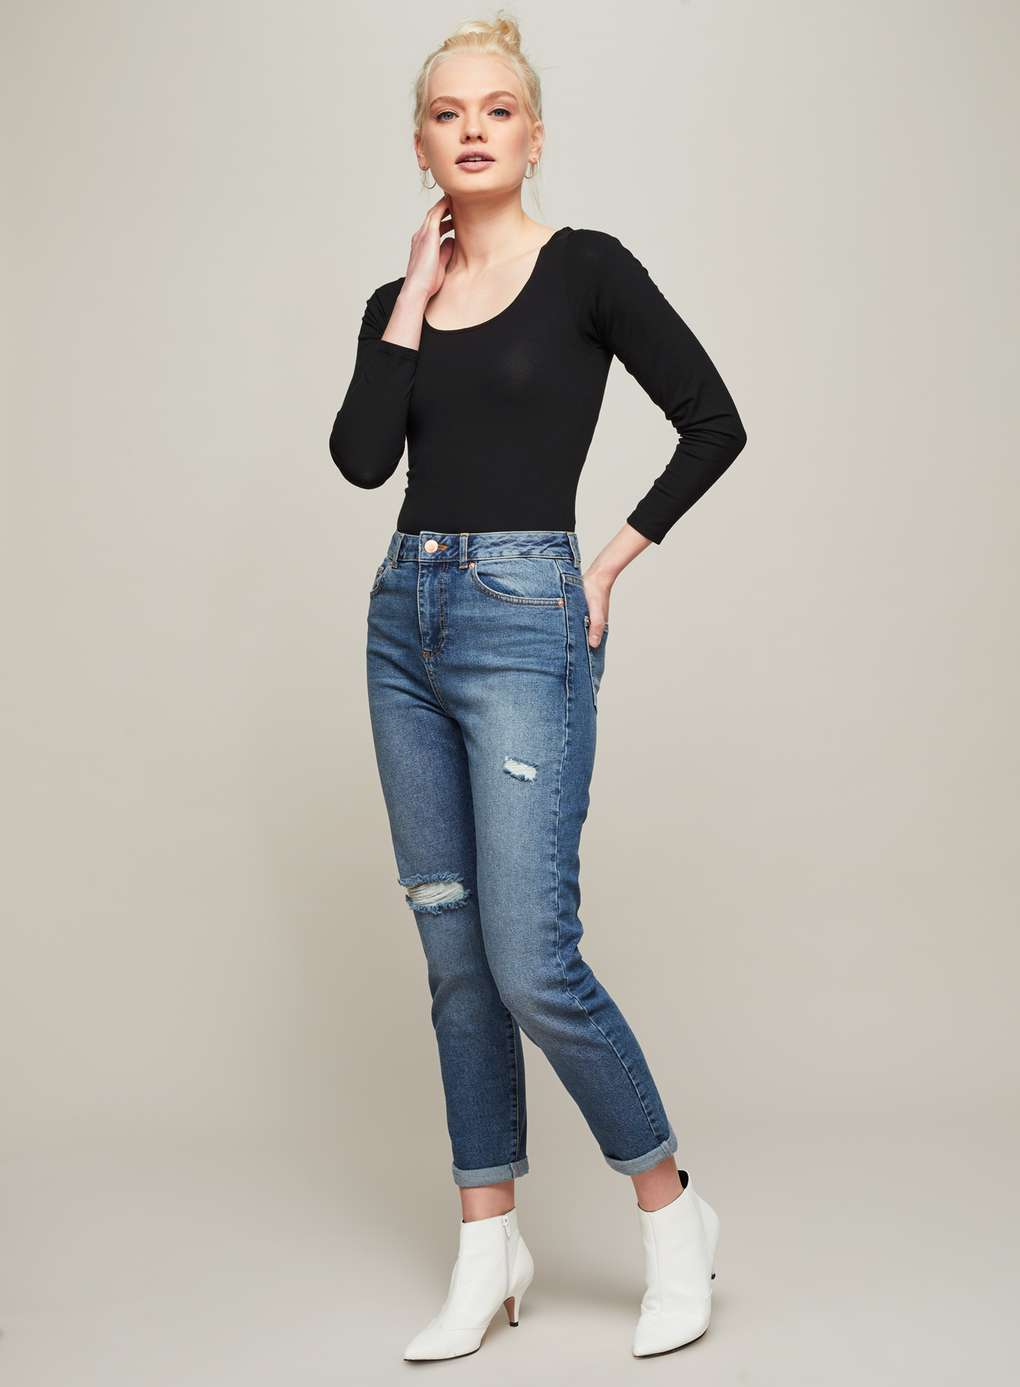 model wears black top, jeans and white boots from miss selfridge